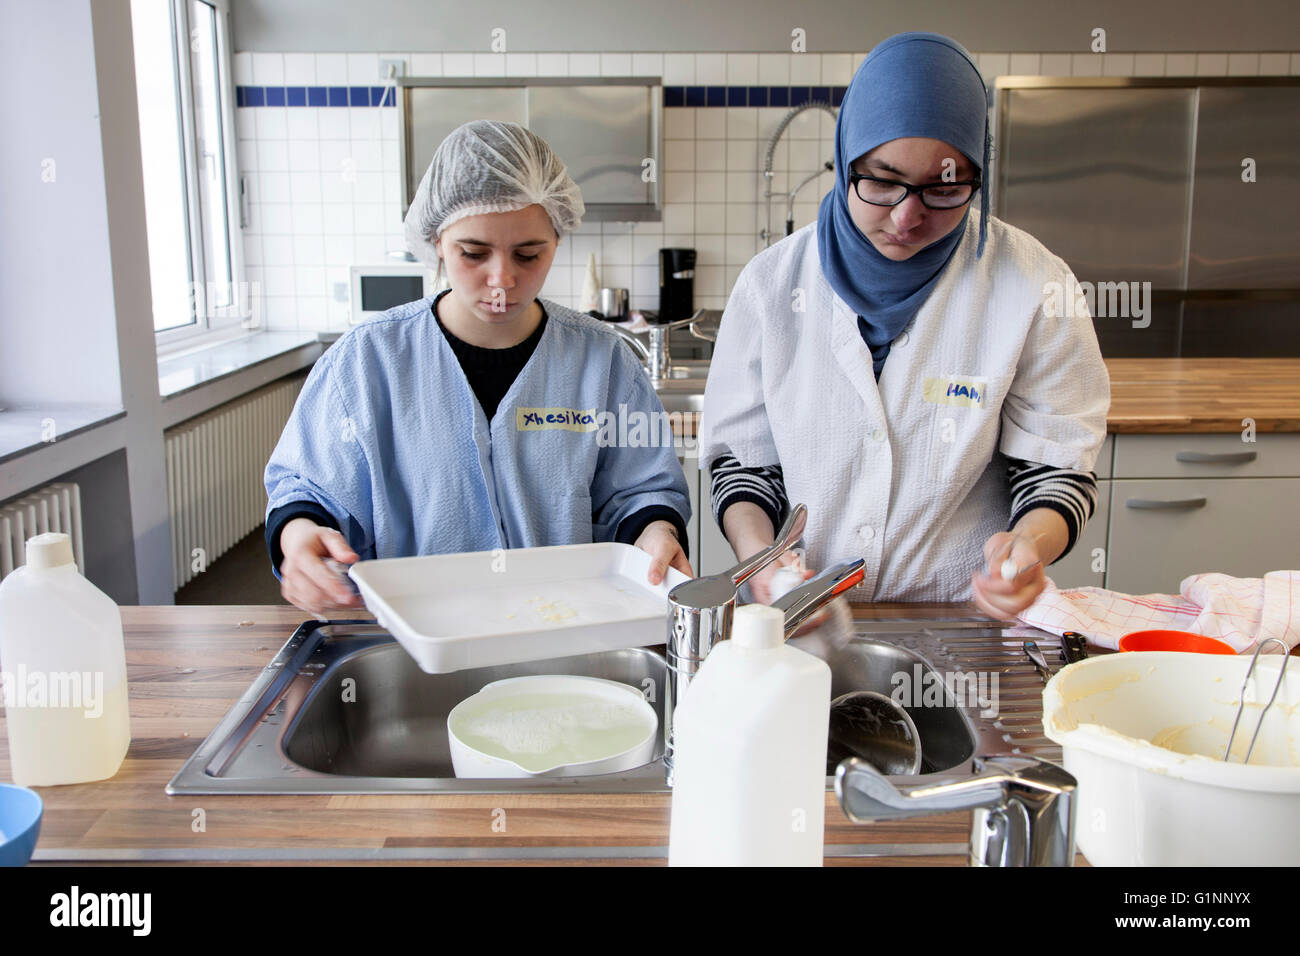 International class during baking a cake in the school kitchen. The trainees wash the kitchen utensils. - Stock Image